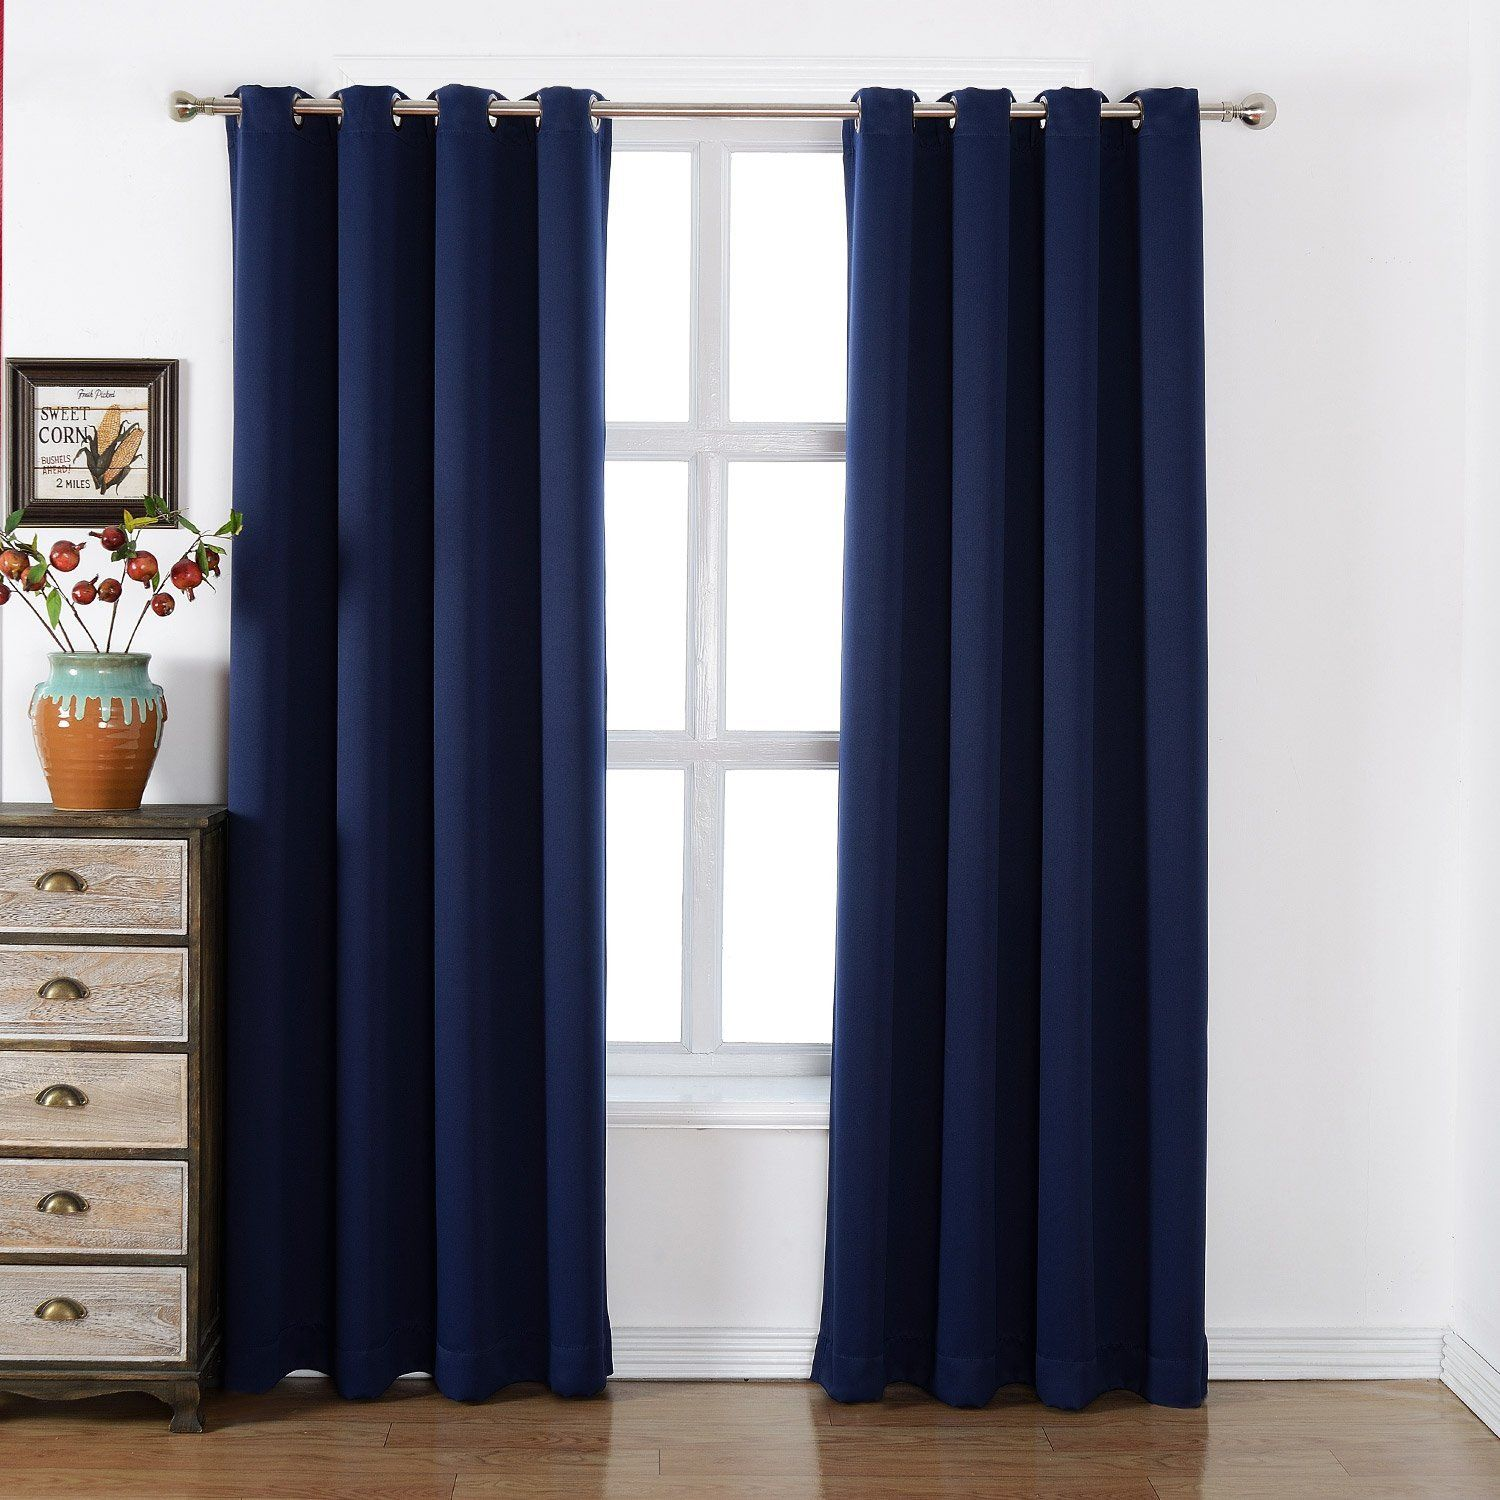 door admirable handballtunisie blackout org rhf curtain patio amazon com thermal curtains insulated l